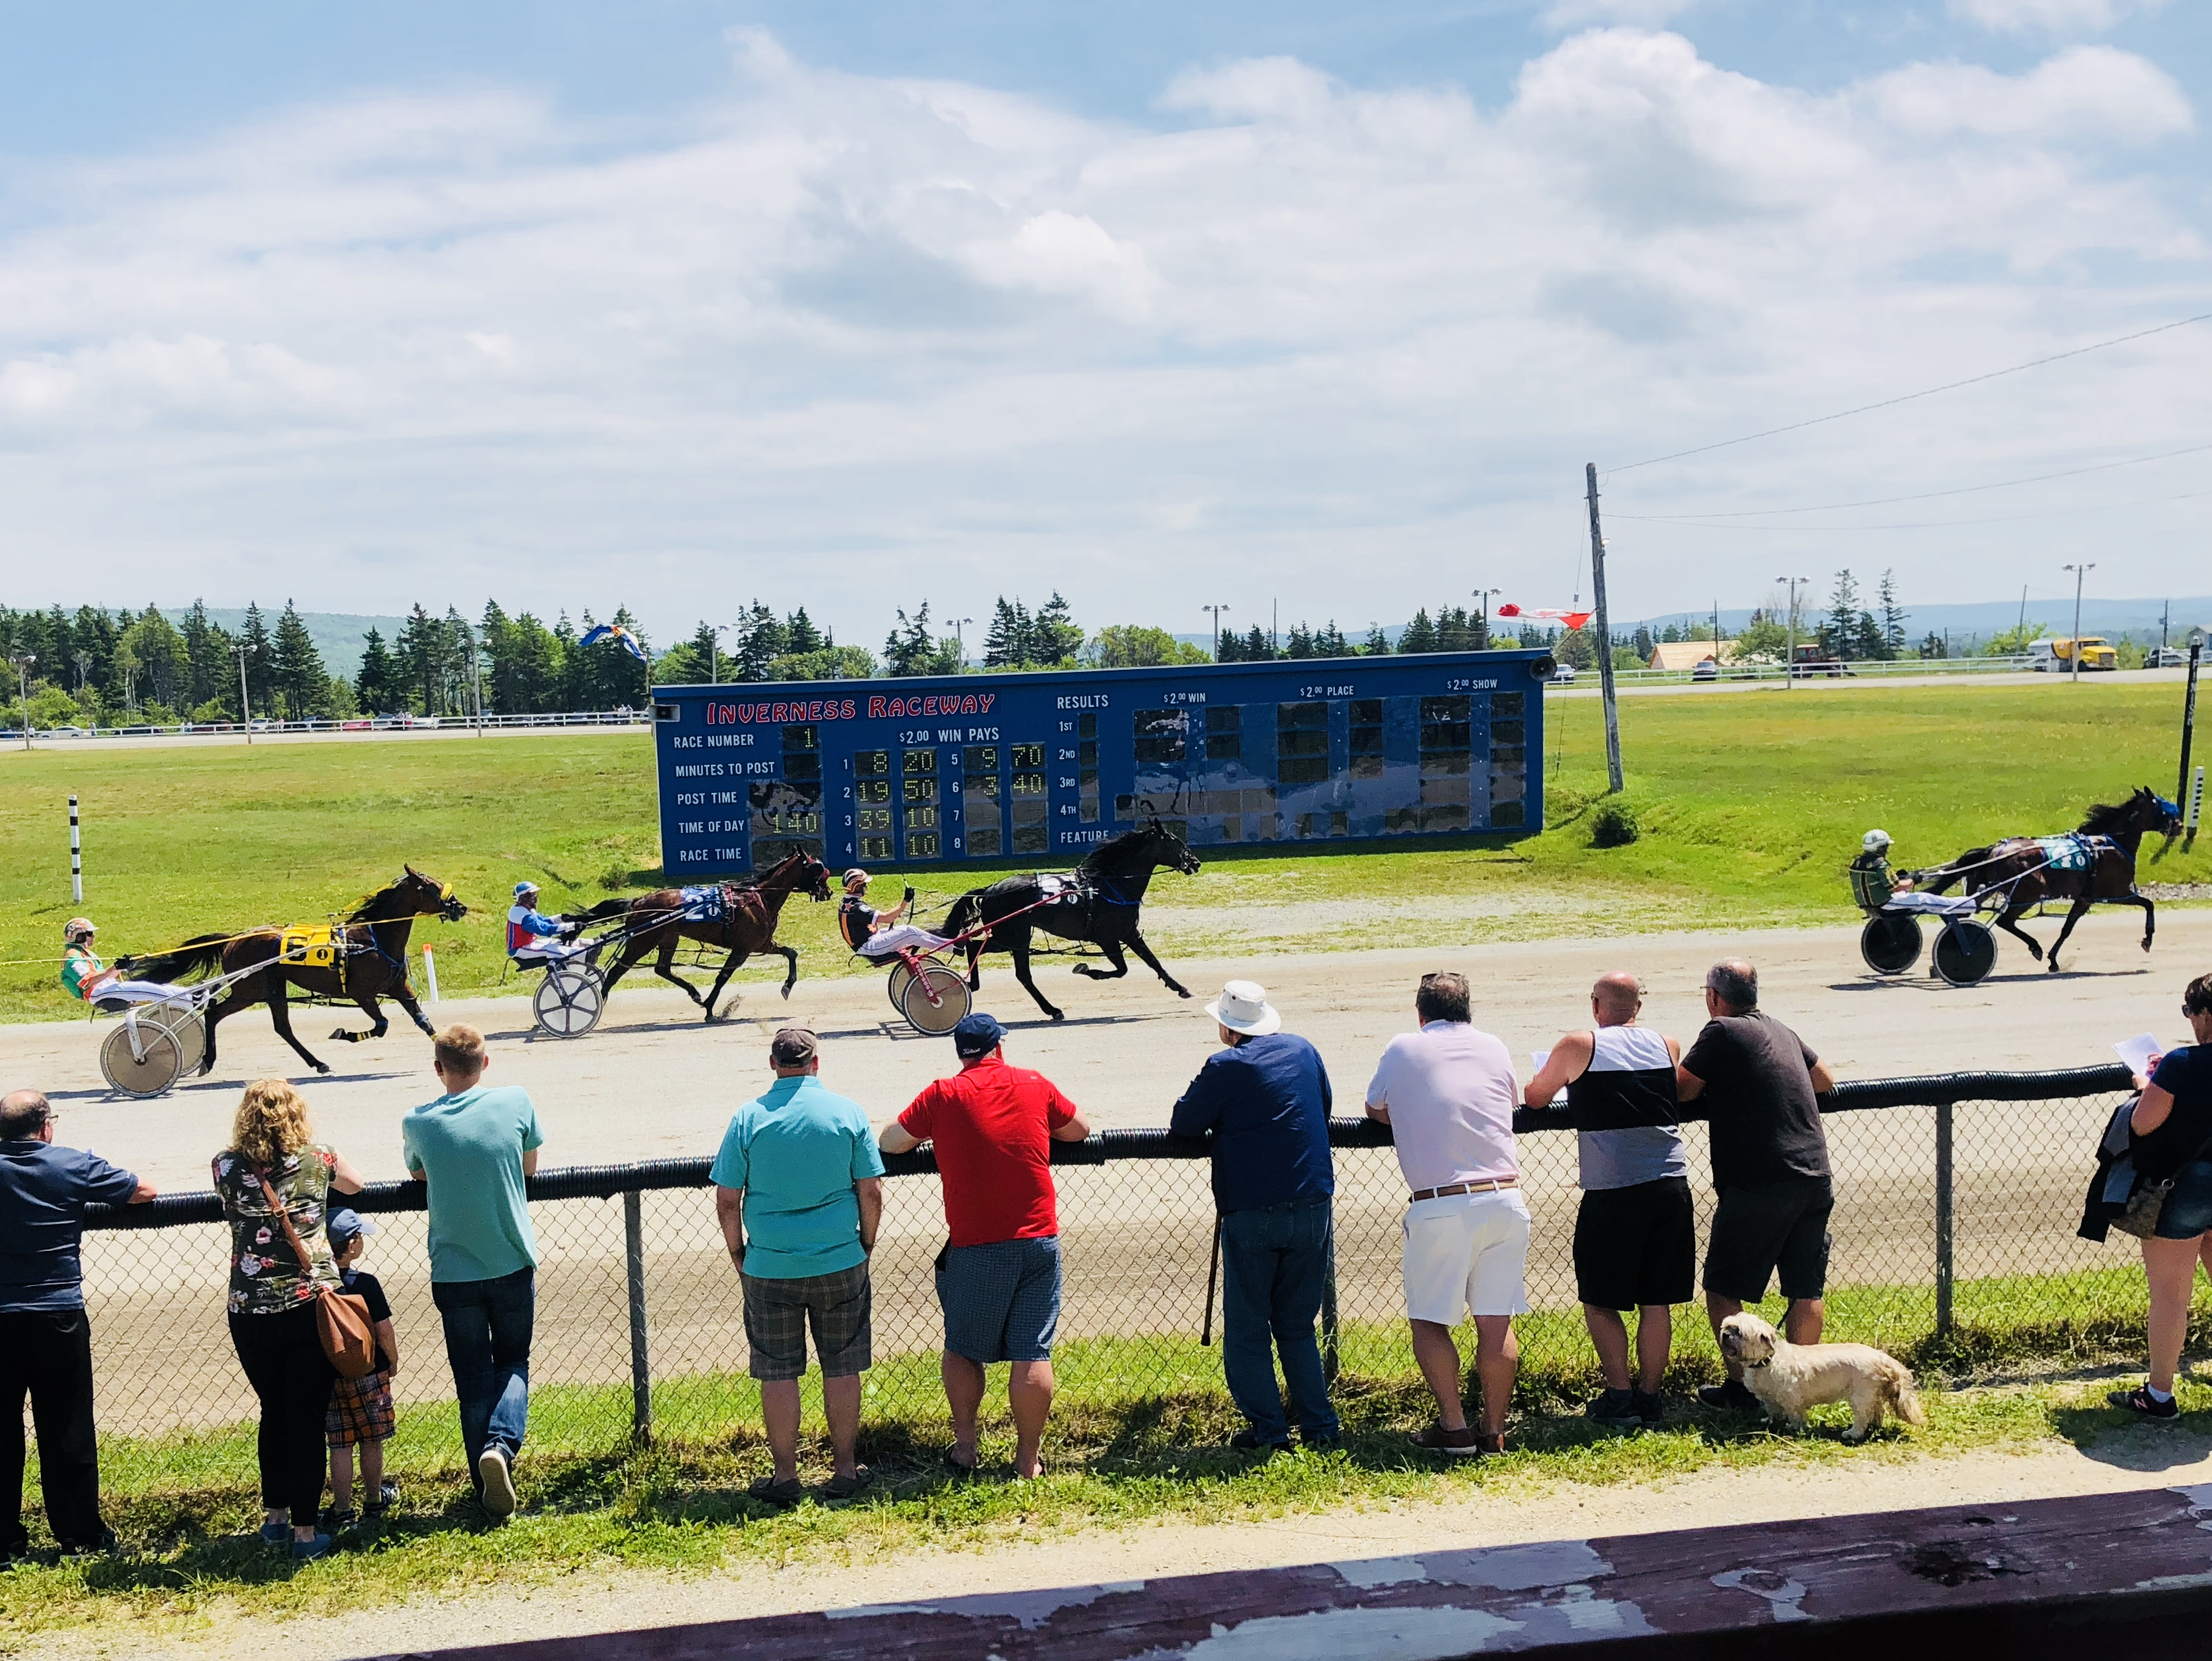 Harness race, Inverness, Cape Breton Island.